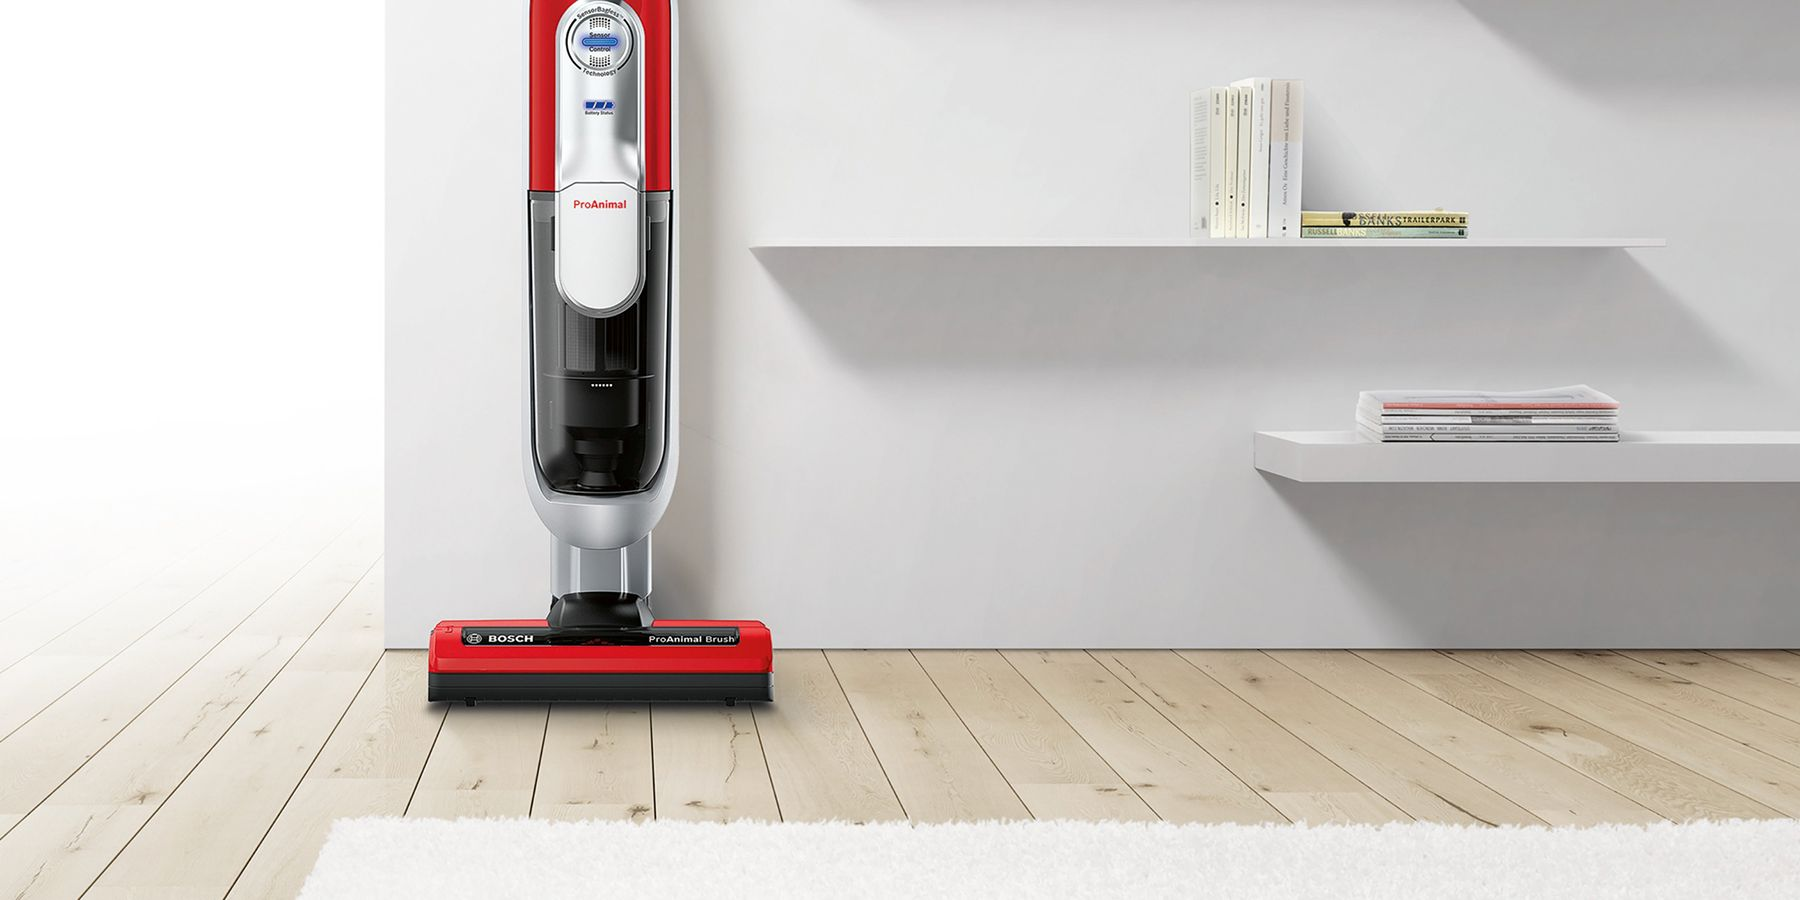 The john lewis buying guide for vacuum cleaners and accessories